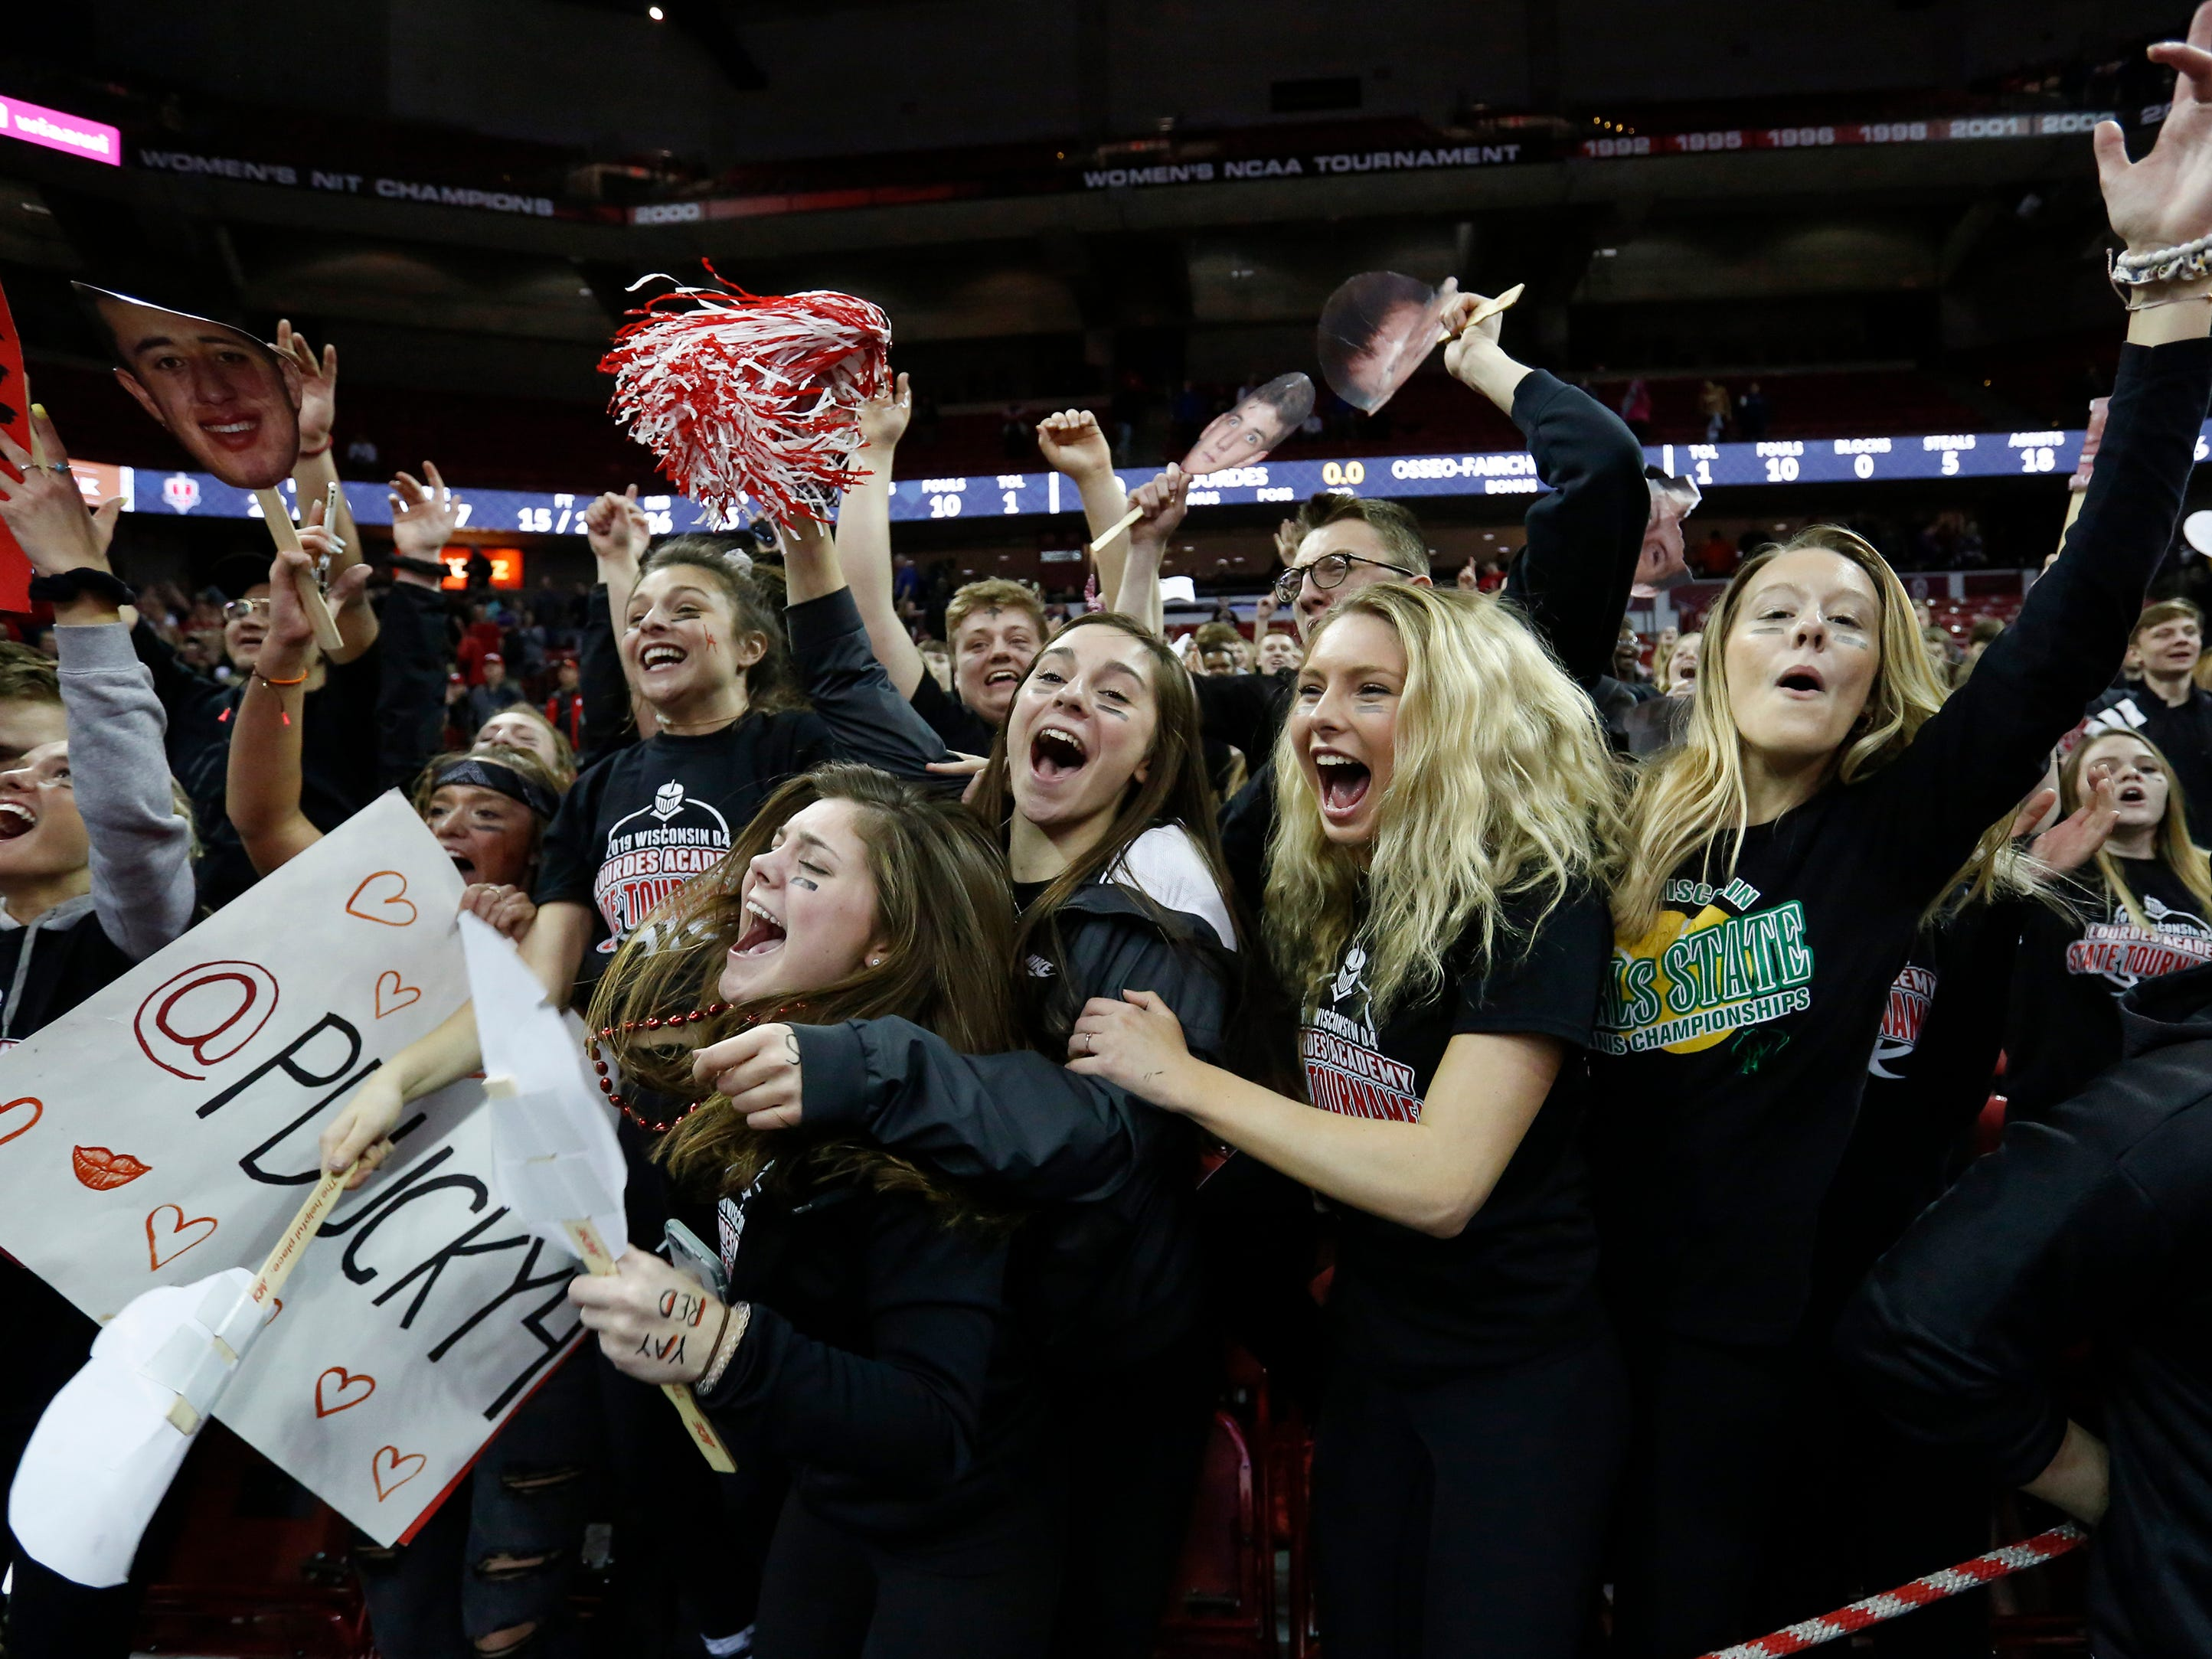 Lourdes Academy's student section reacts after defeating Osseo-Fairchild High School in their WIAA Division 4 boys basketball state semifinal at the Kohl Center Thursday, March 14, 2019, in Madison, Wis.